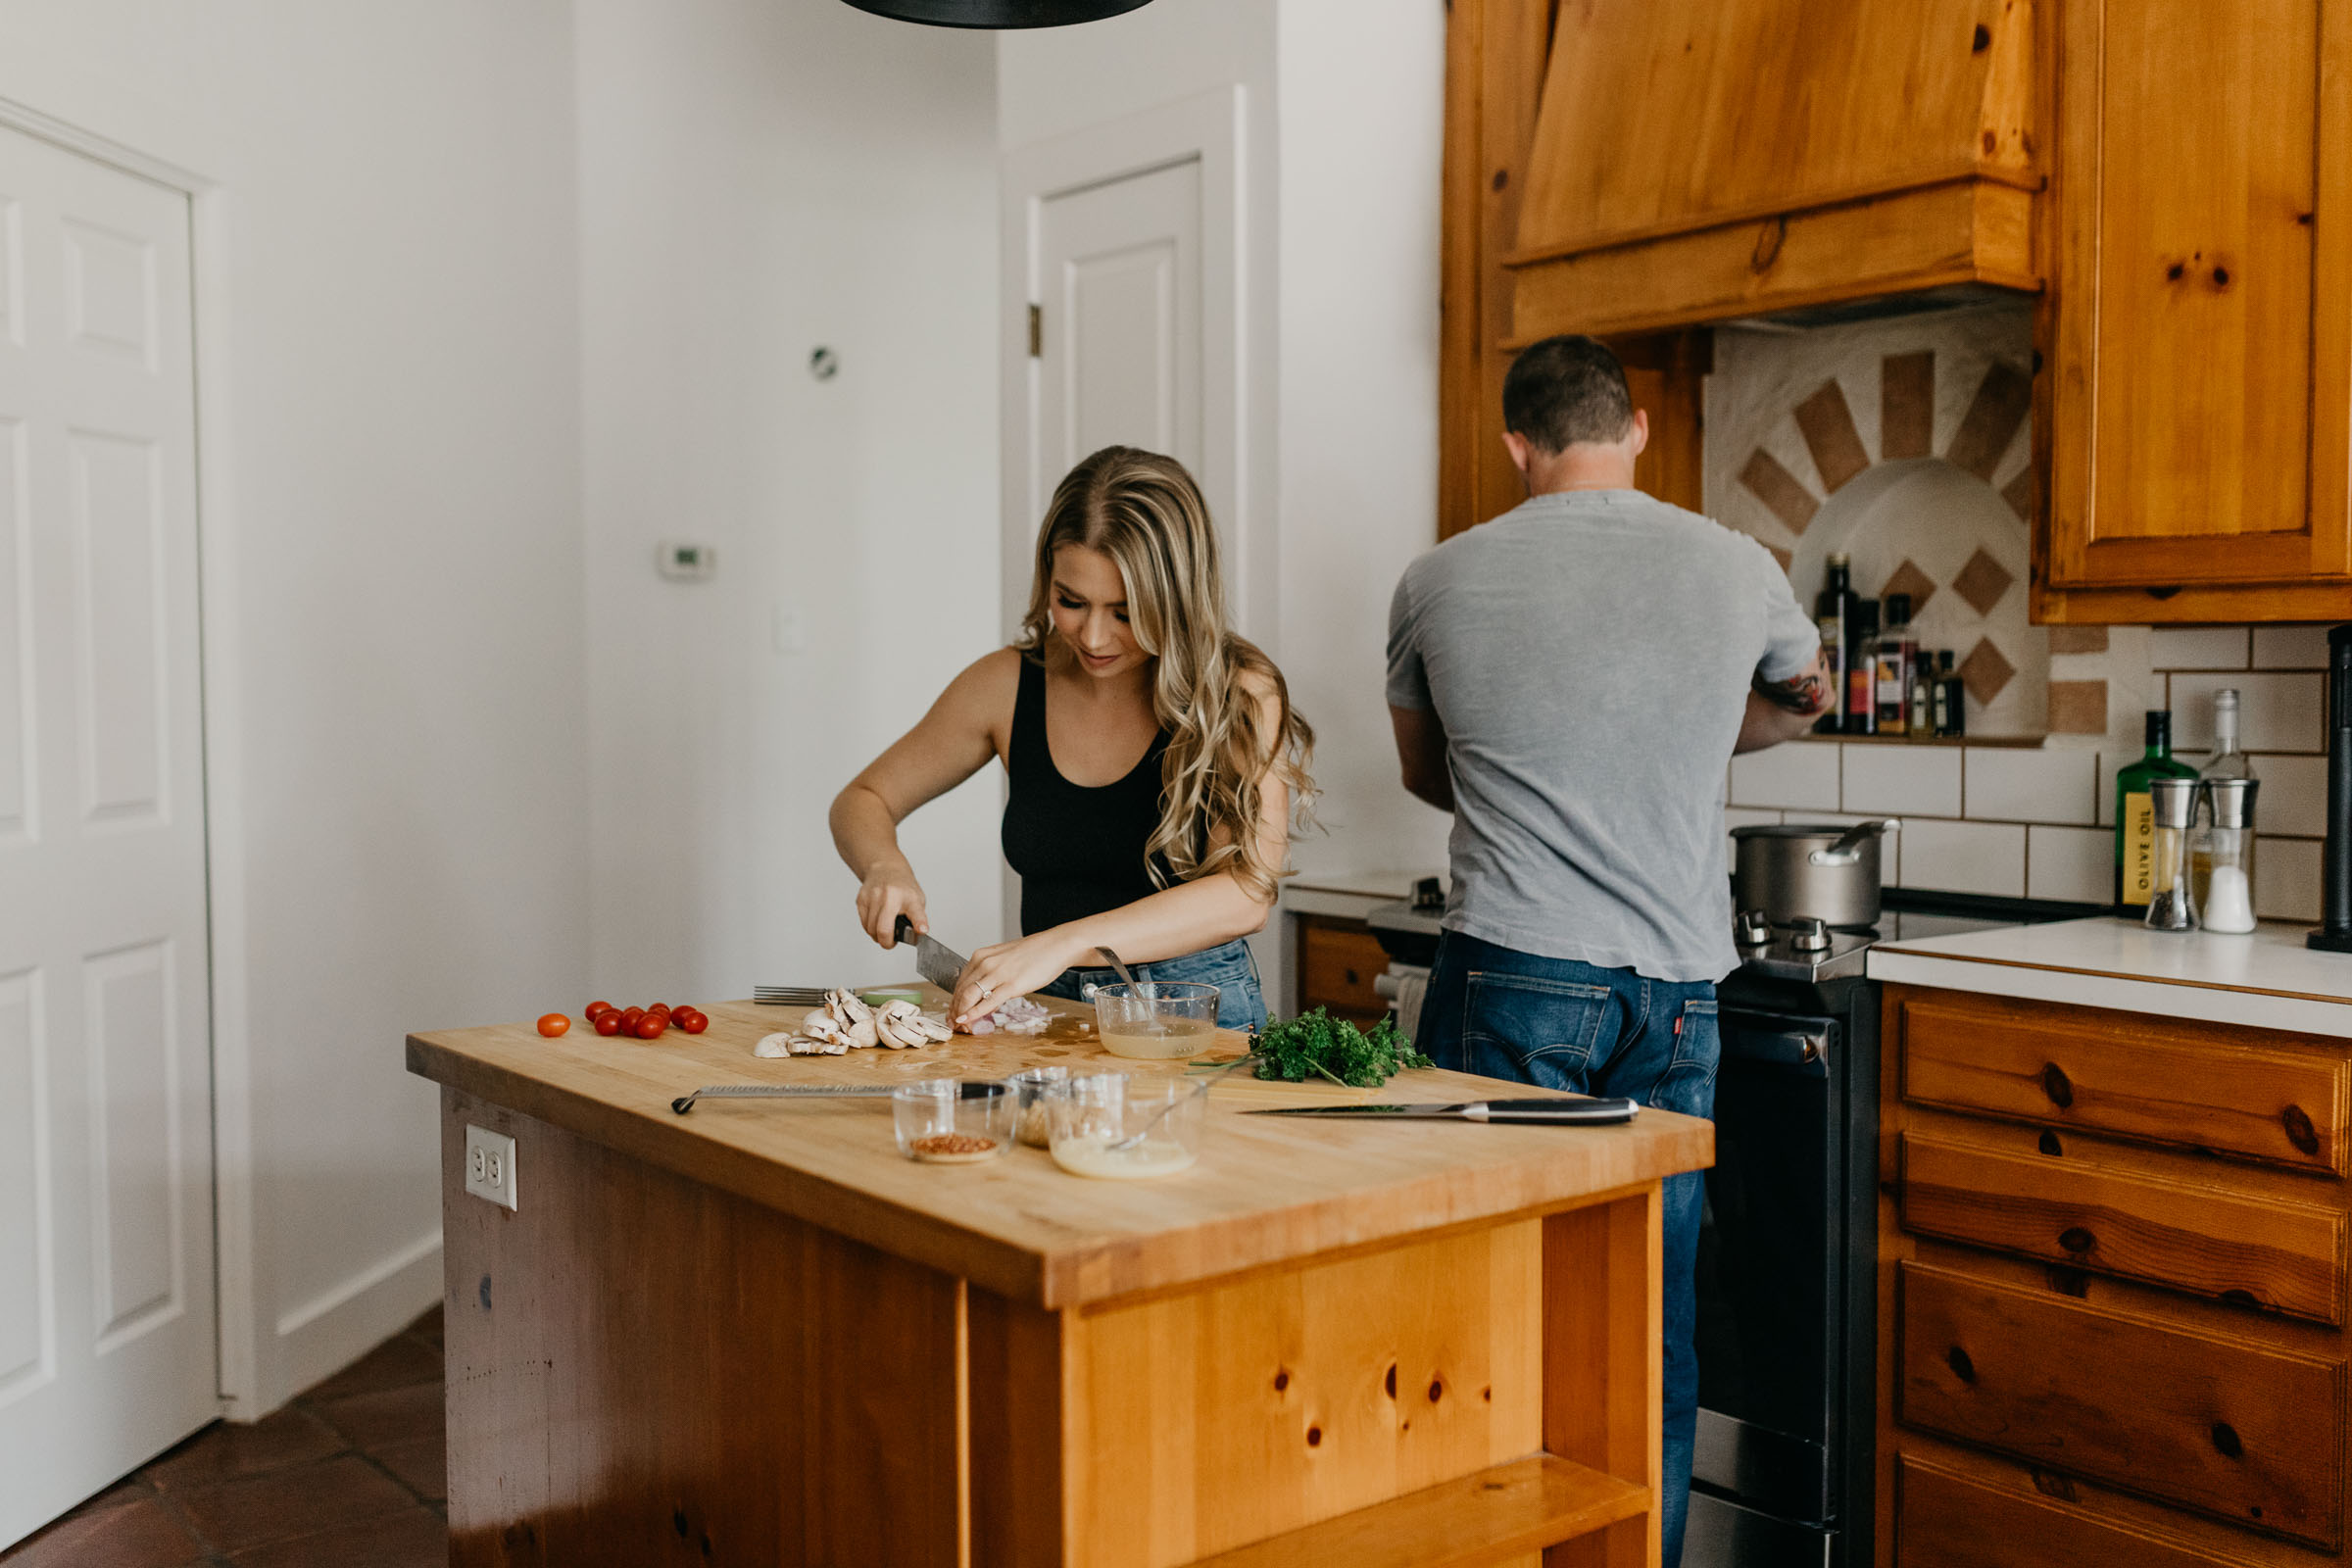 Adorable couple cooking dinner for date night